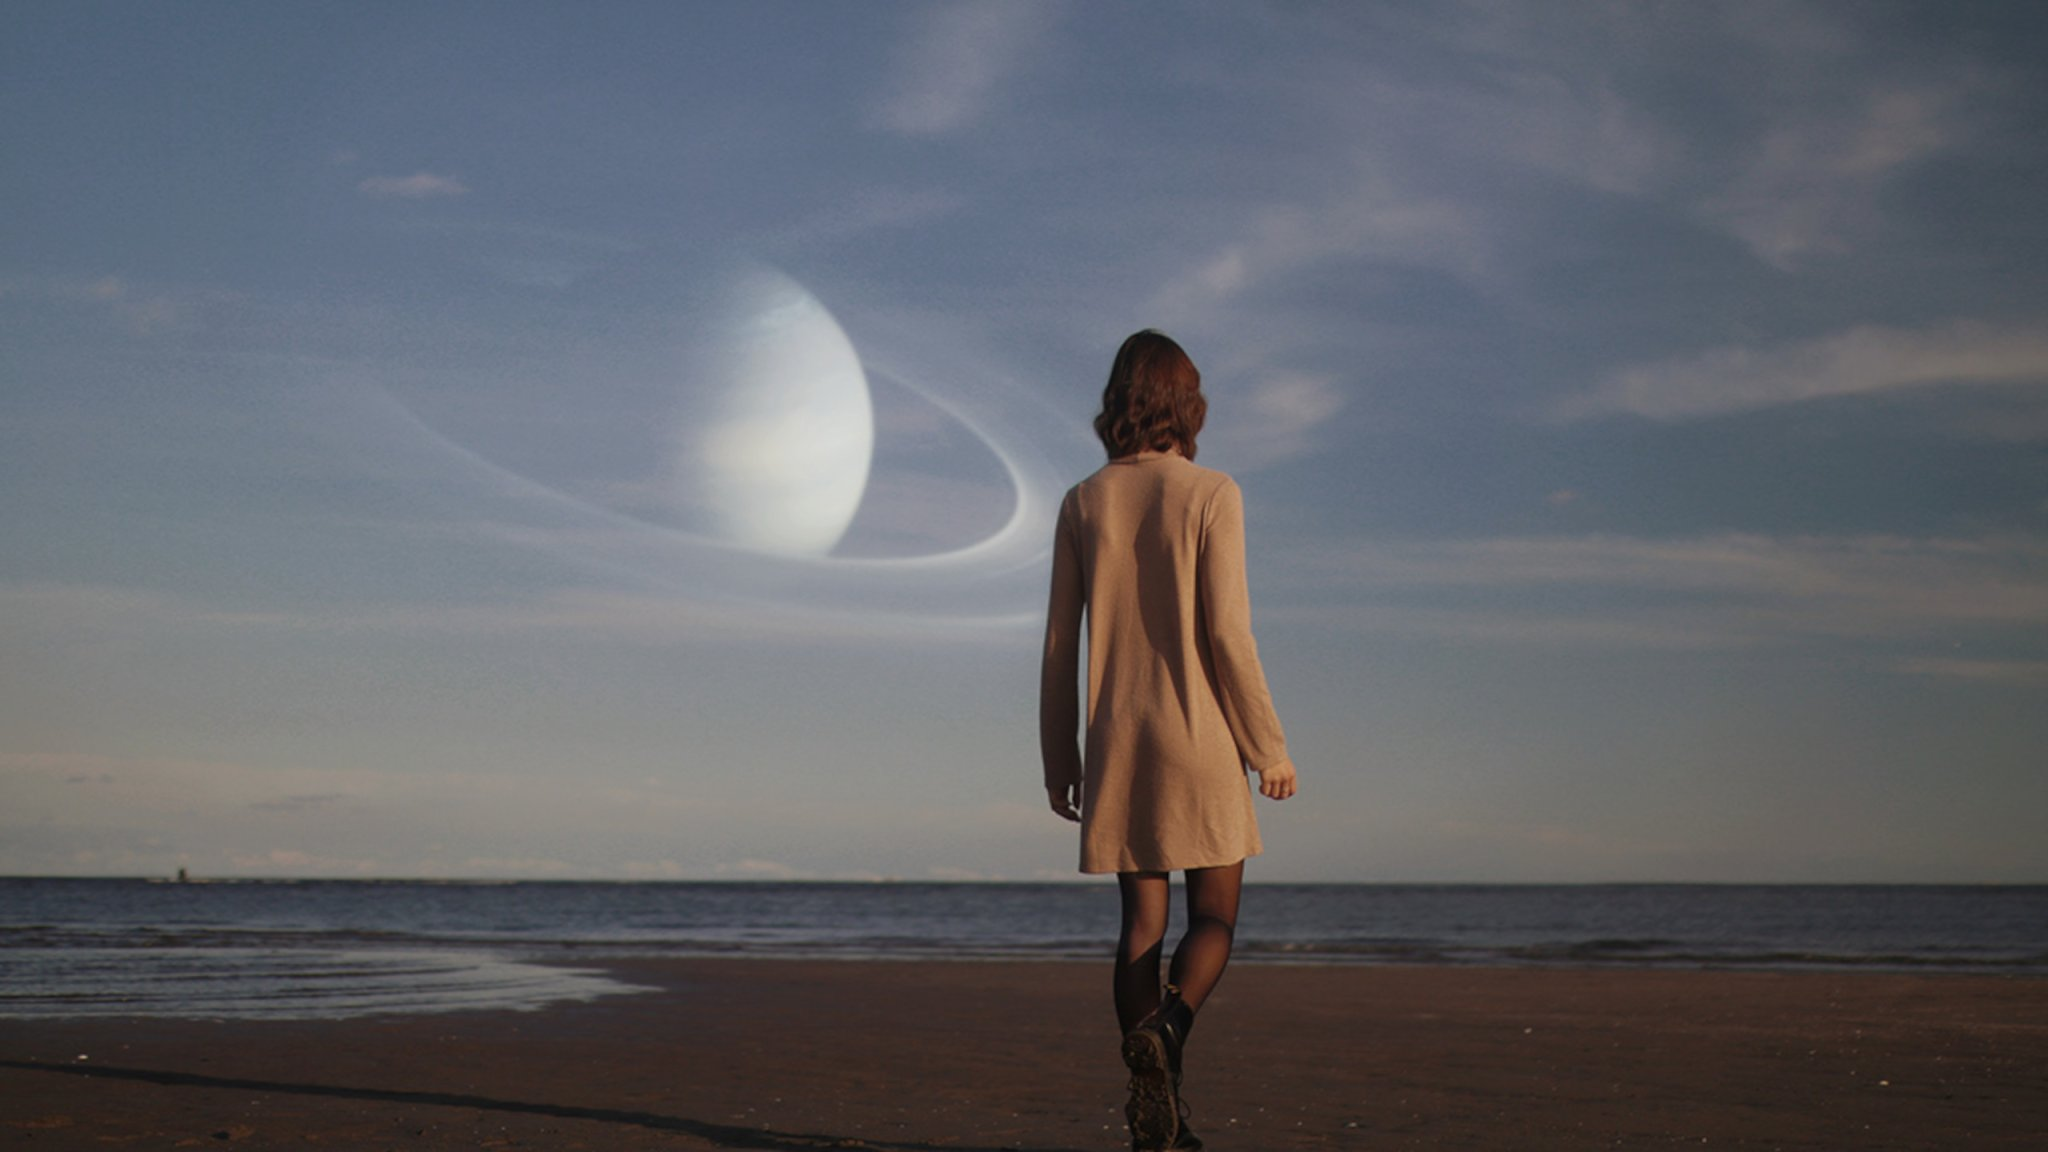 Moody cinematic portraits inspired by dreamy science fiction